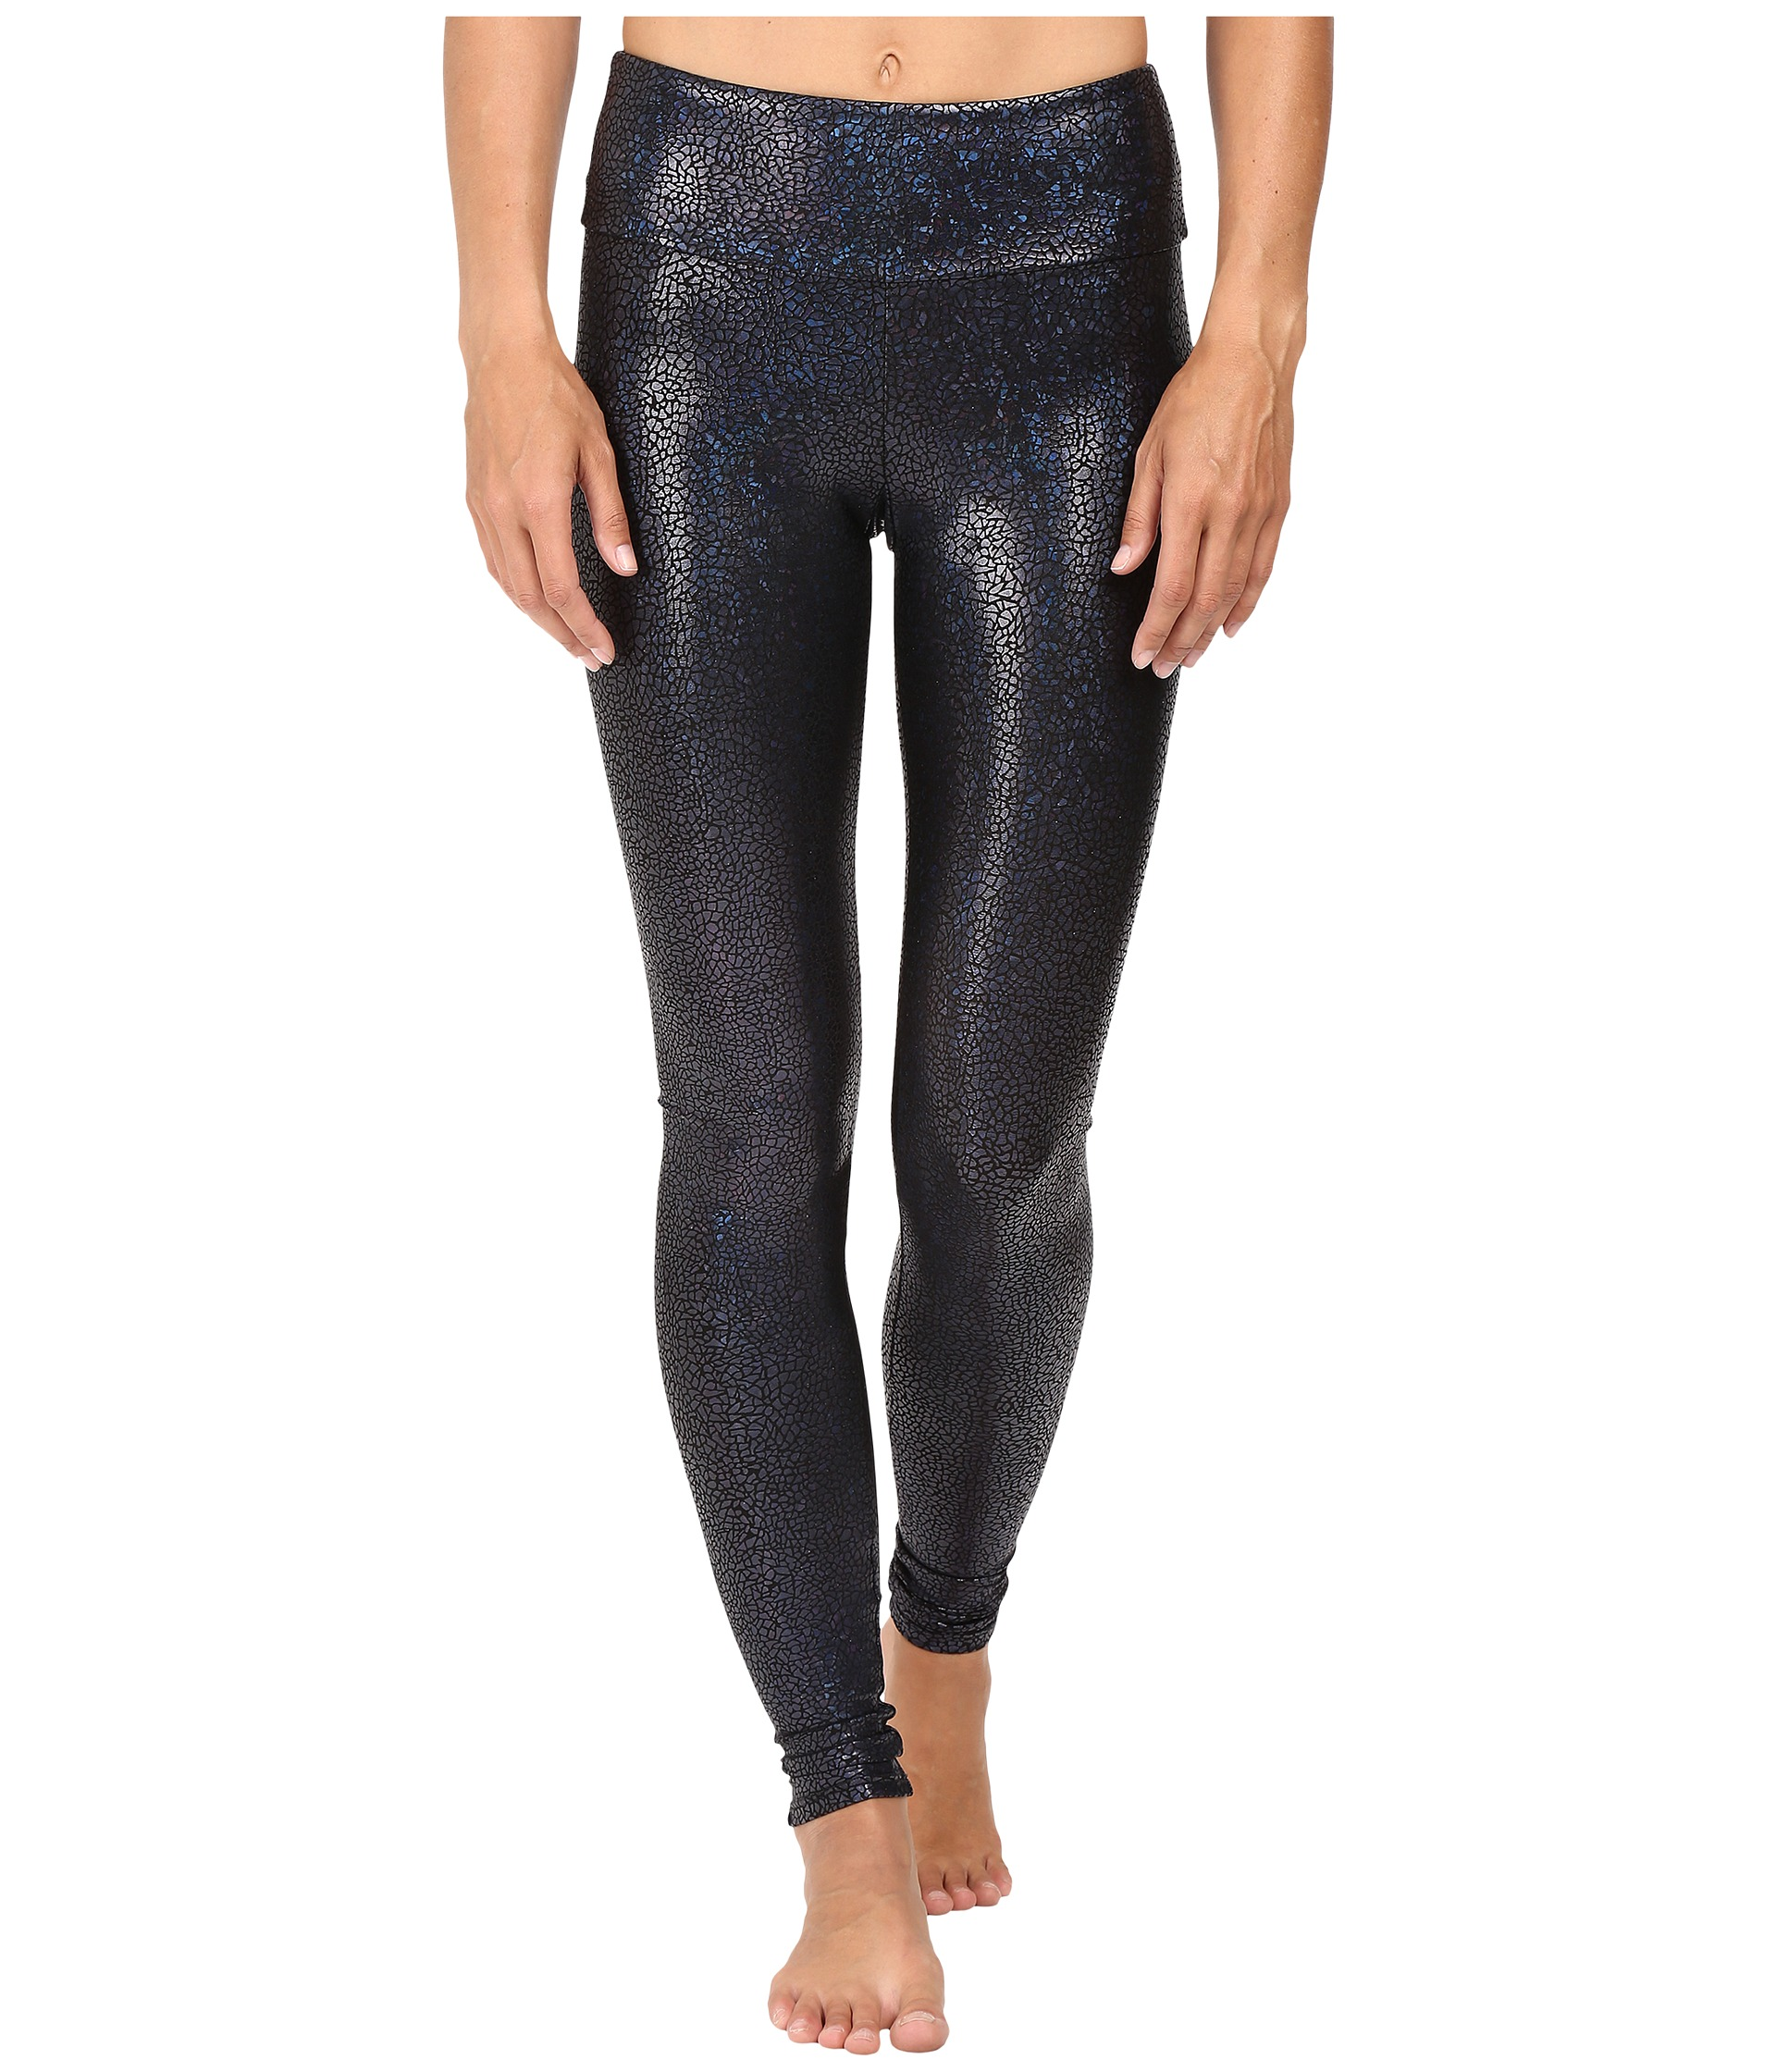 Free shipping on leggings for women at dnxvvyut.ml Shop for white, black, printed, high waisted, faux leather and more in the best brands. Free shipping and returns.